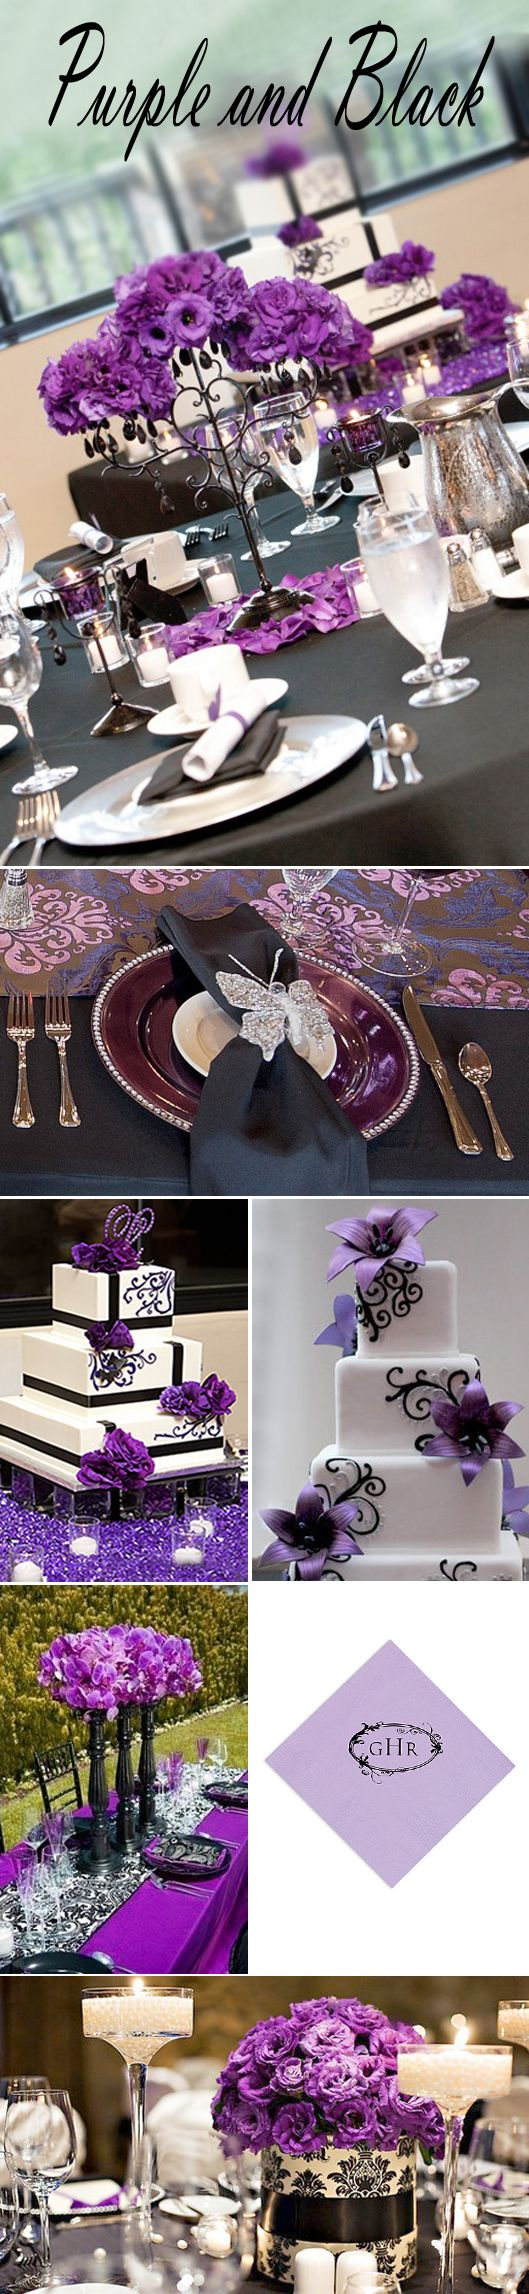 Purple and Black Collage